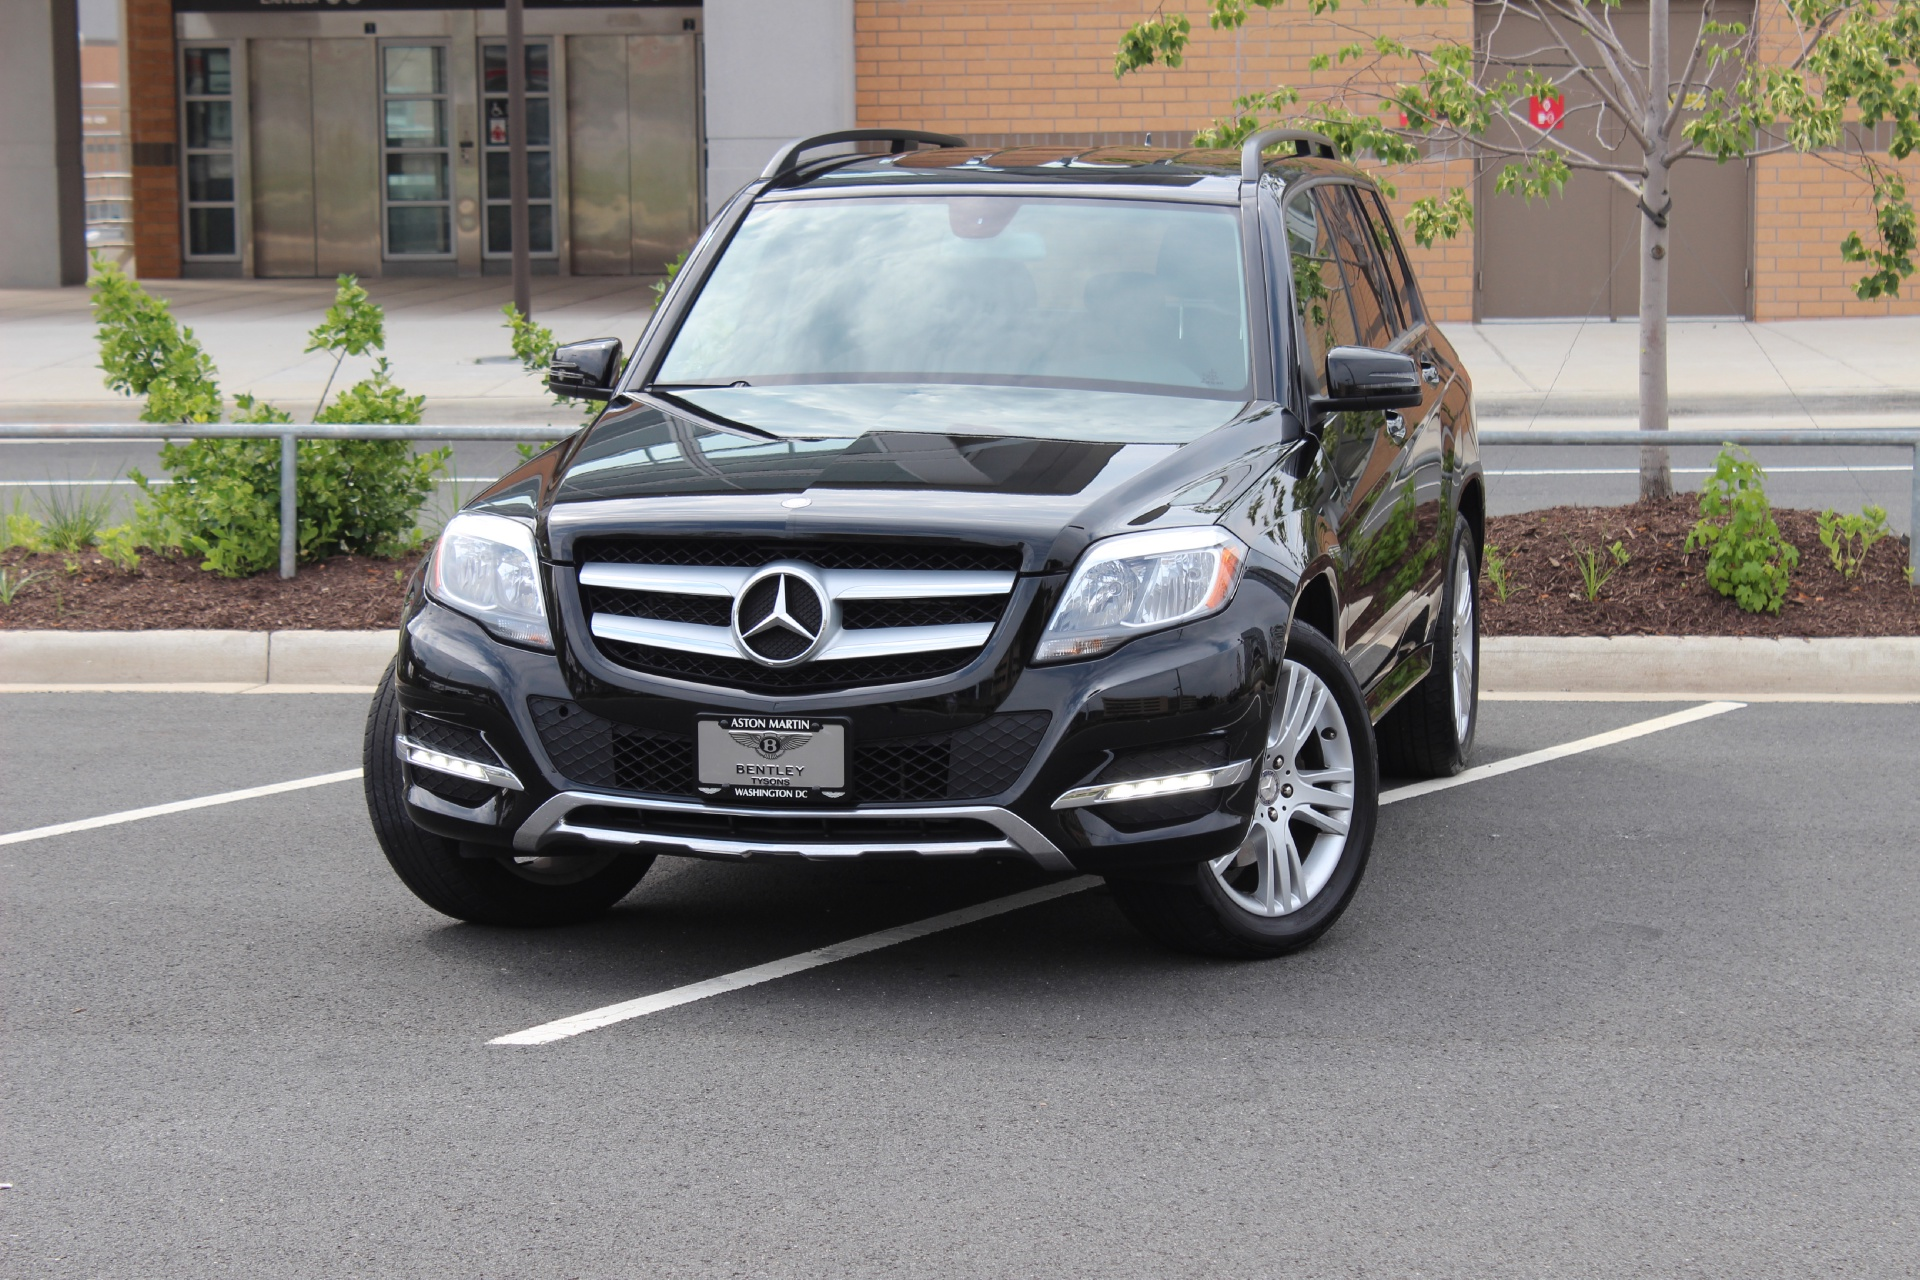 2013 mercedes benz glk glk350 4matic stock p046021 for